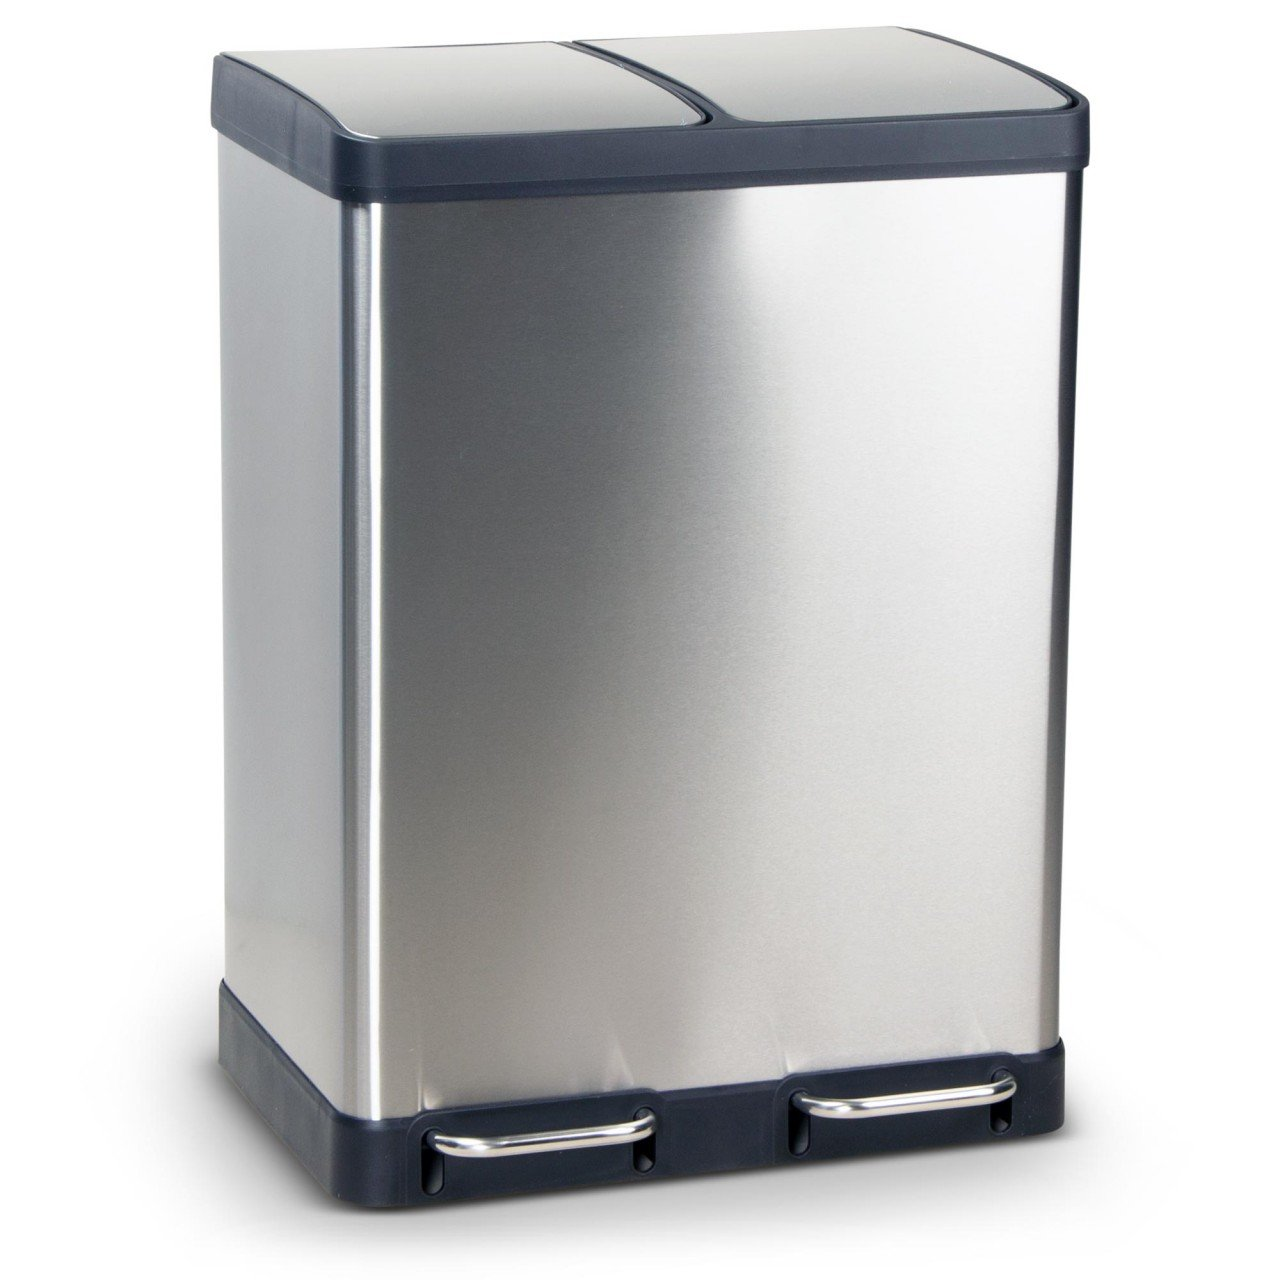 Stainless Steel Pedal Bin OSLO Trash Can, Dustbin, Dimensions: 49x39x49 cm, Volume: 2 x 20 Litres ambico